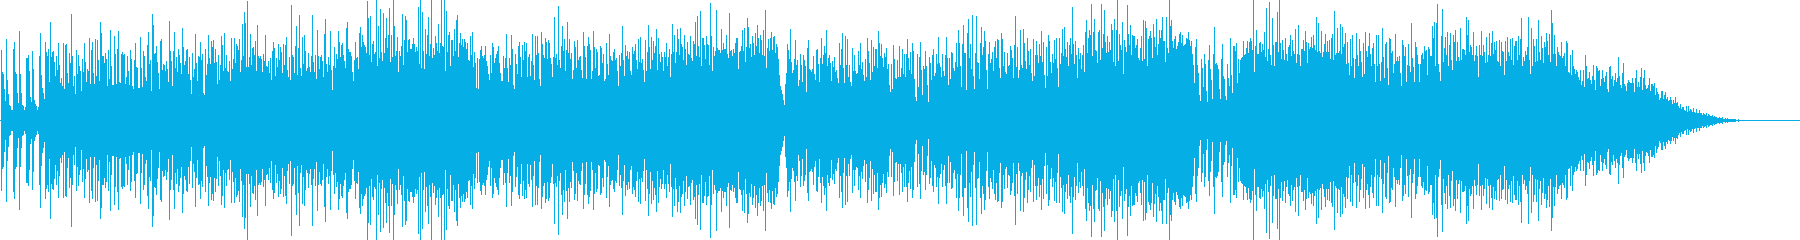 Cool impression piano dance pops's reproduced waveform